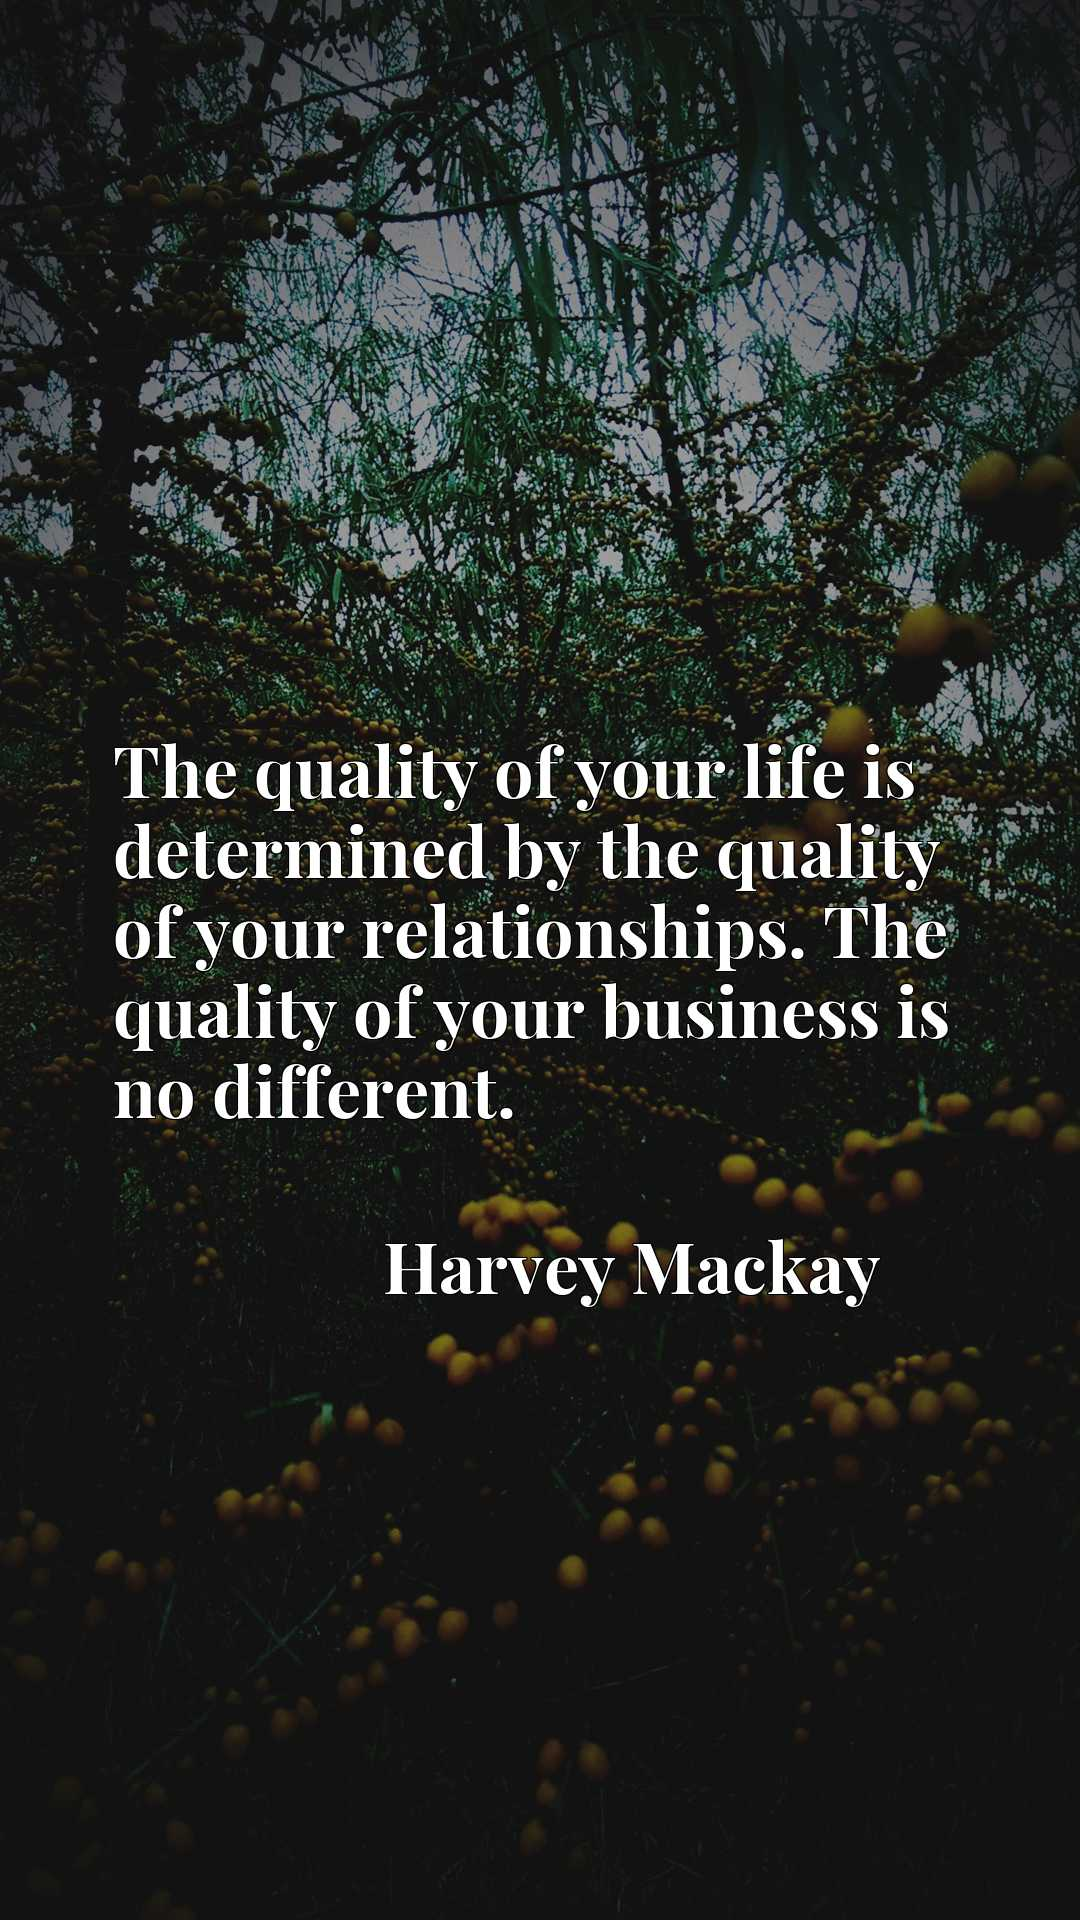 The quality of your life is determined by the quality of your relationships. The quality of your business is no different.